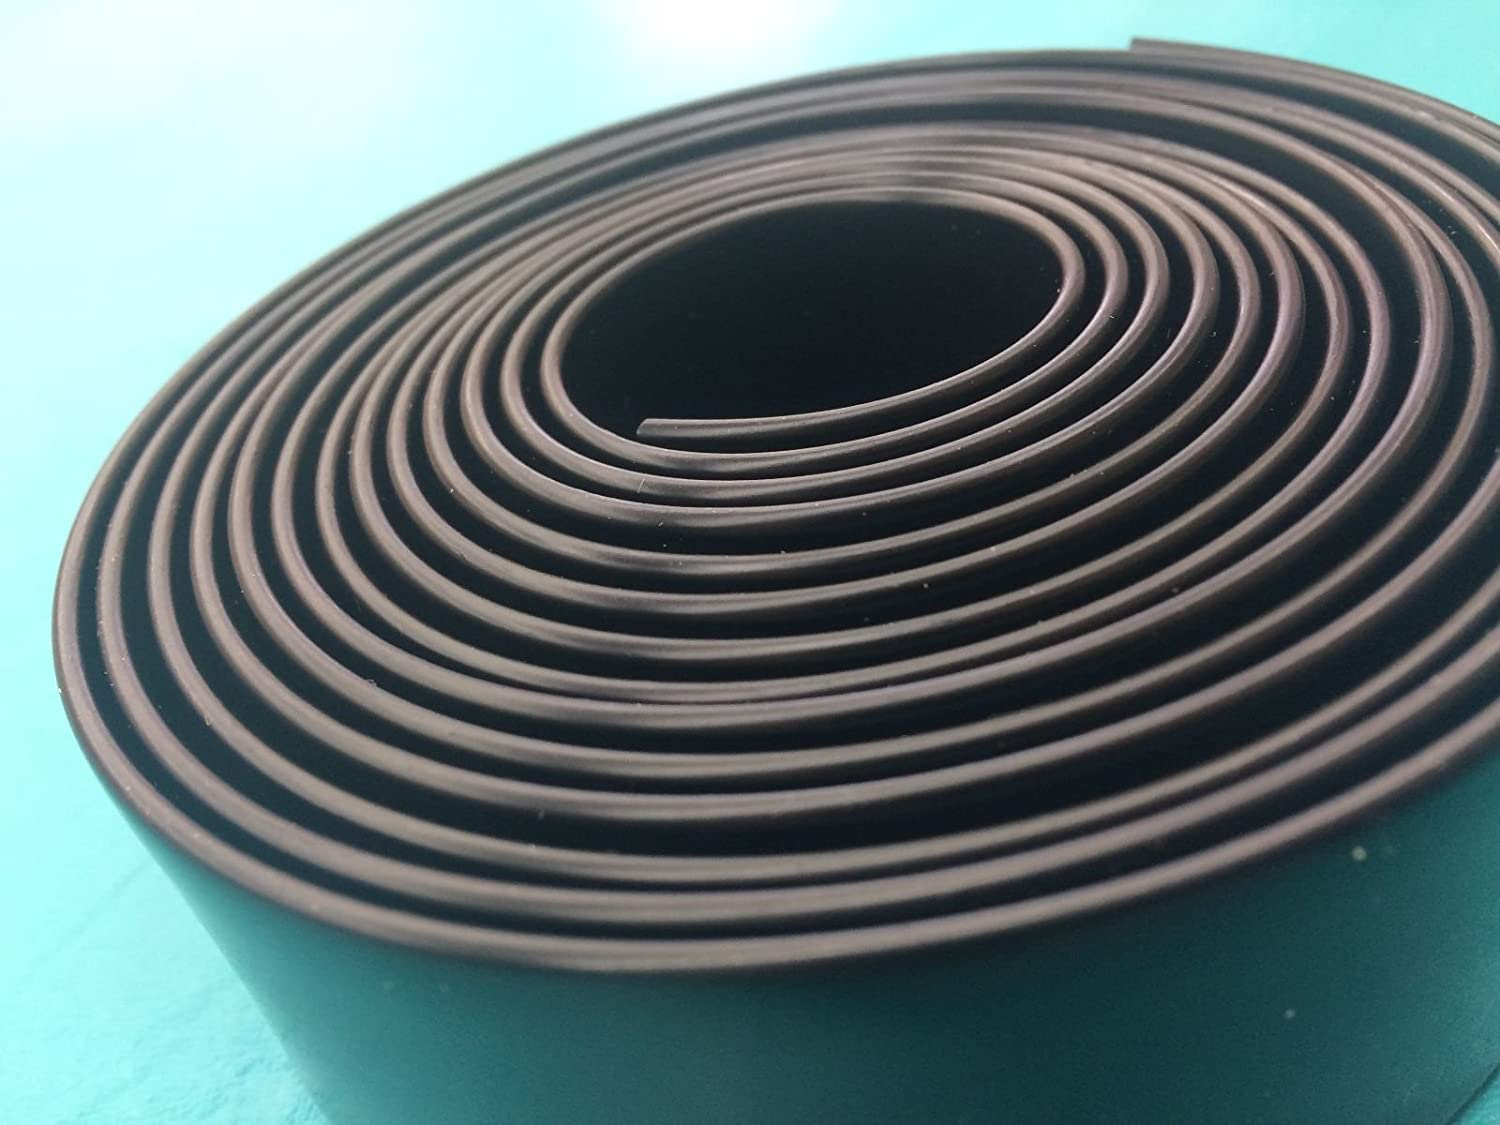 "KOMORAX Black 1.5"" Wide 20' Length Chair Vinyl Strap Strapping for Patio Lawn Garden Outdoor Furniture Matte Finish Color"